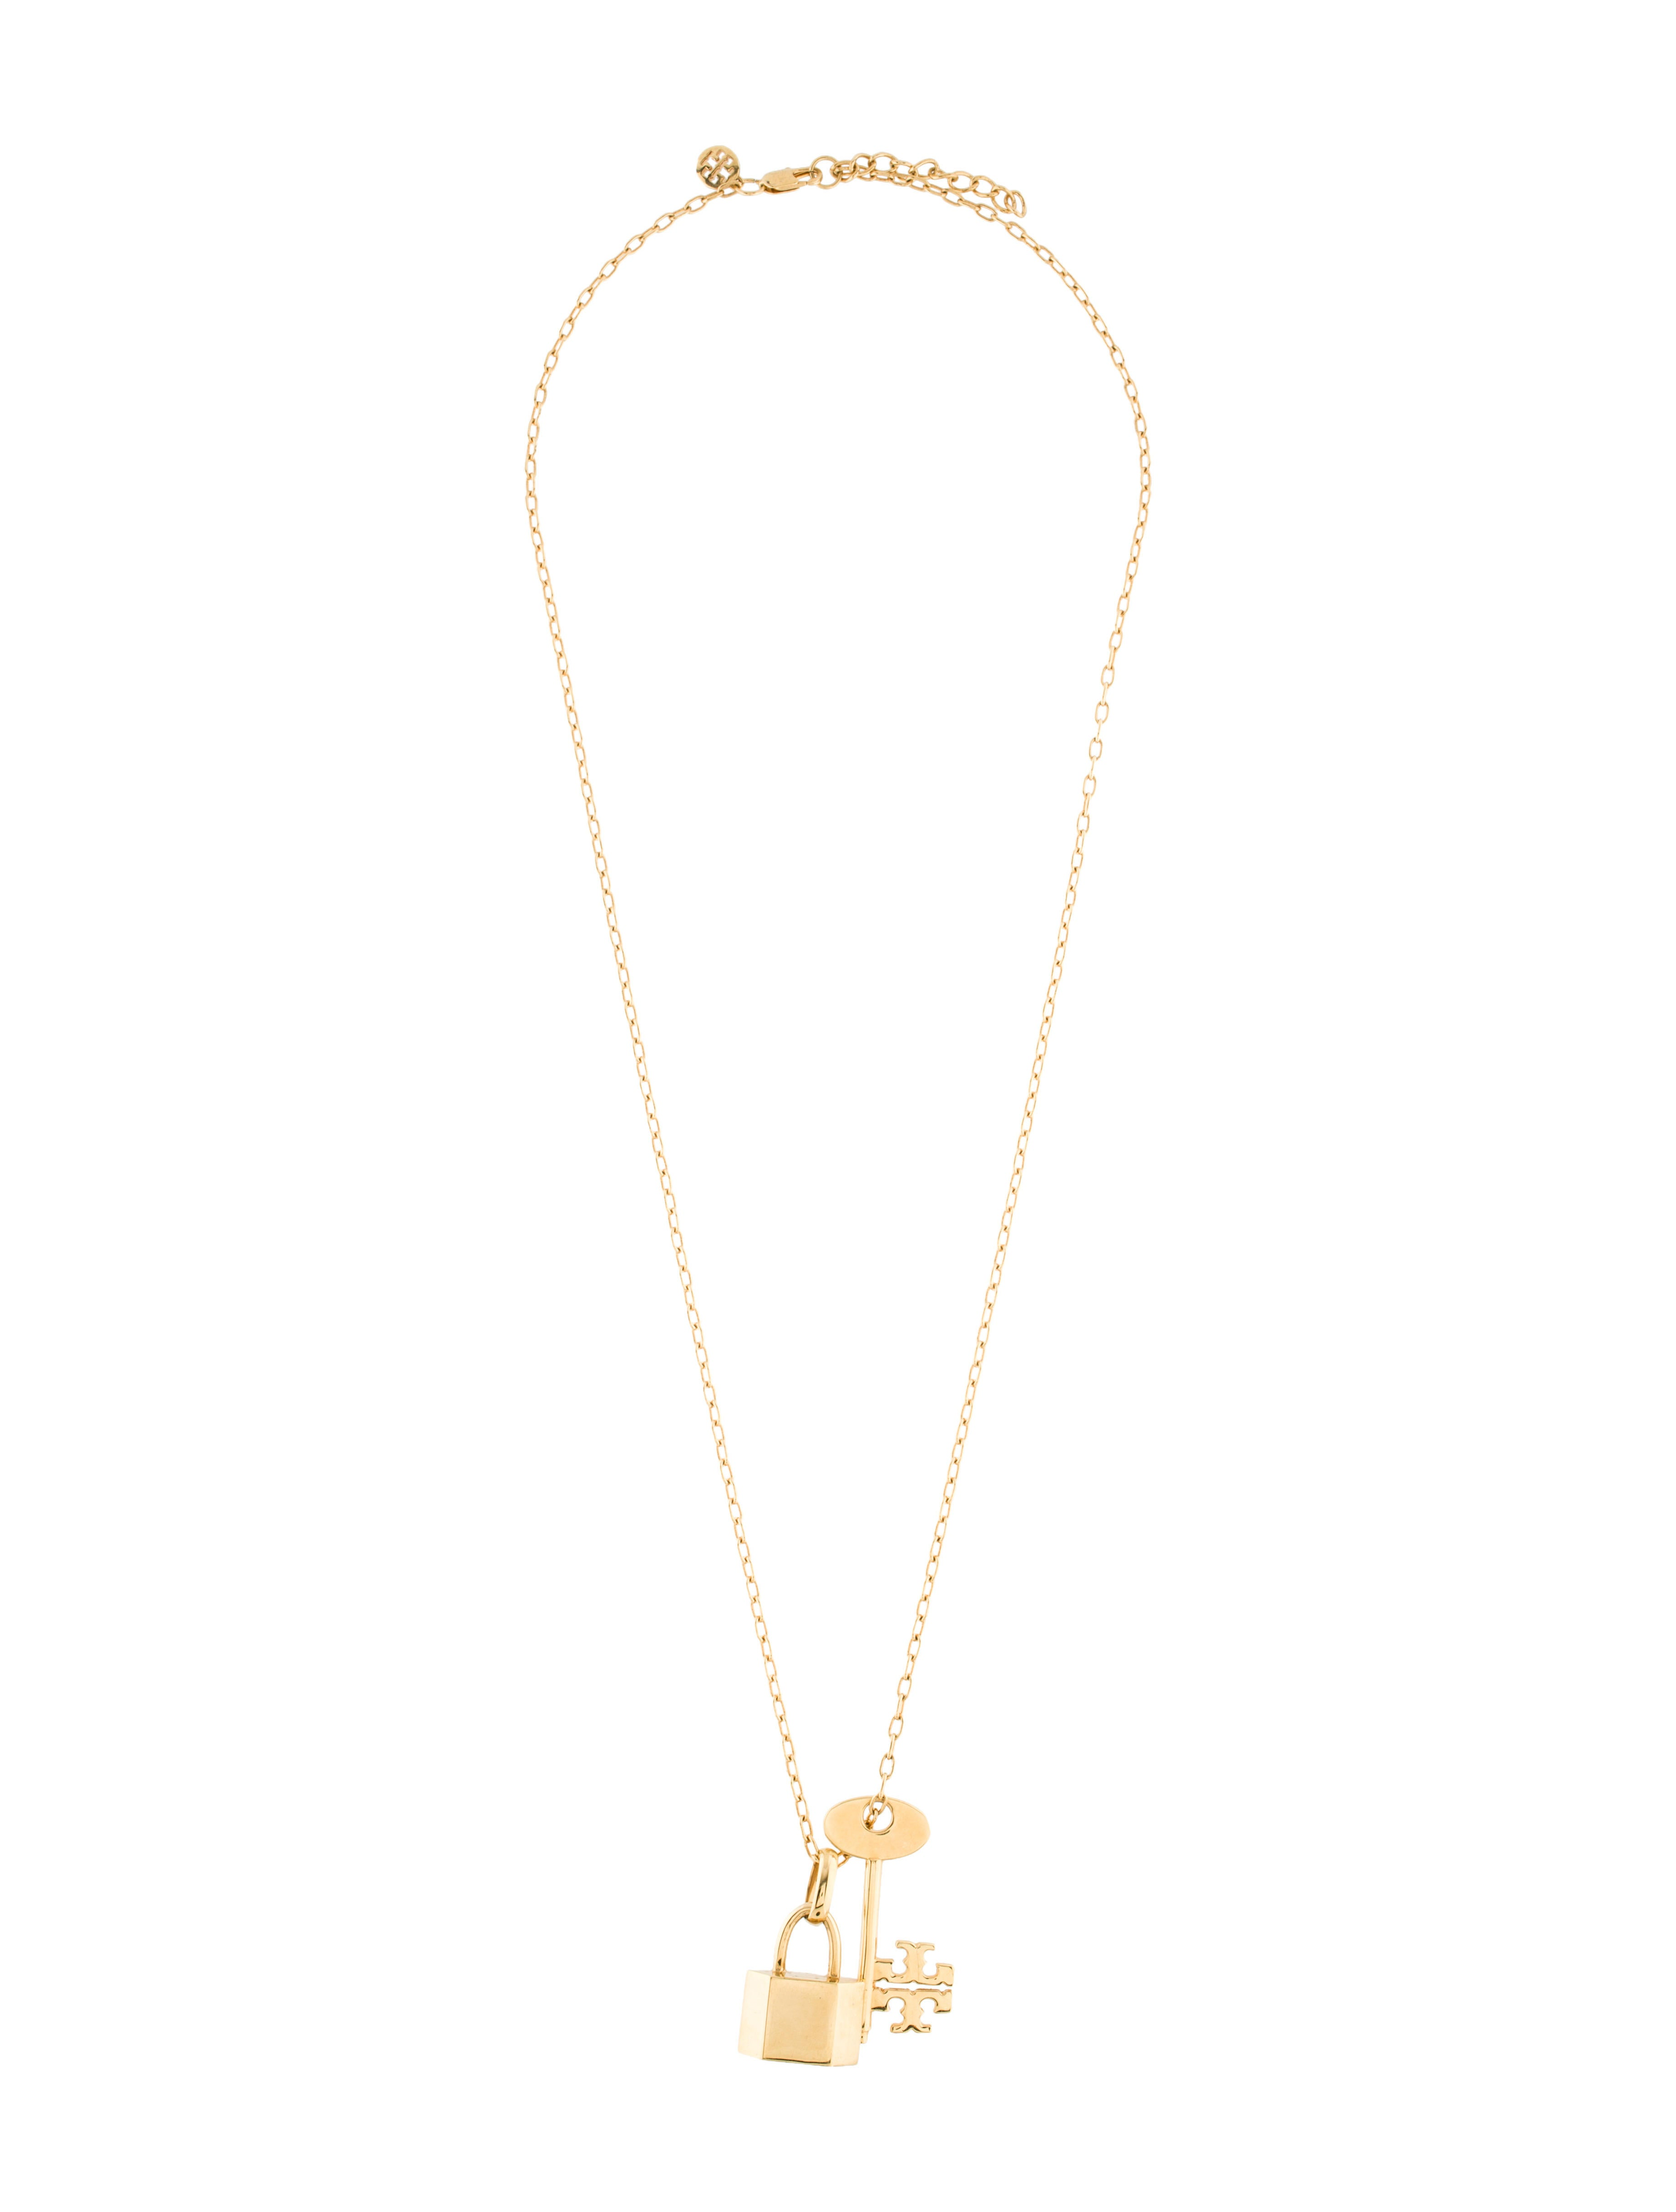 Tory Burch Lock & Key Chain-Link Necklace - Necklaces - WTO99224   The RealReal